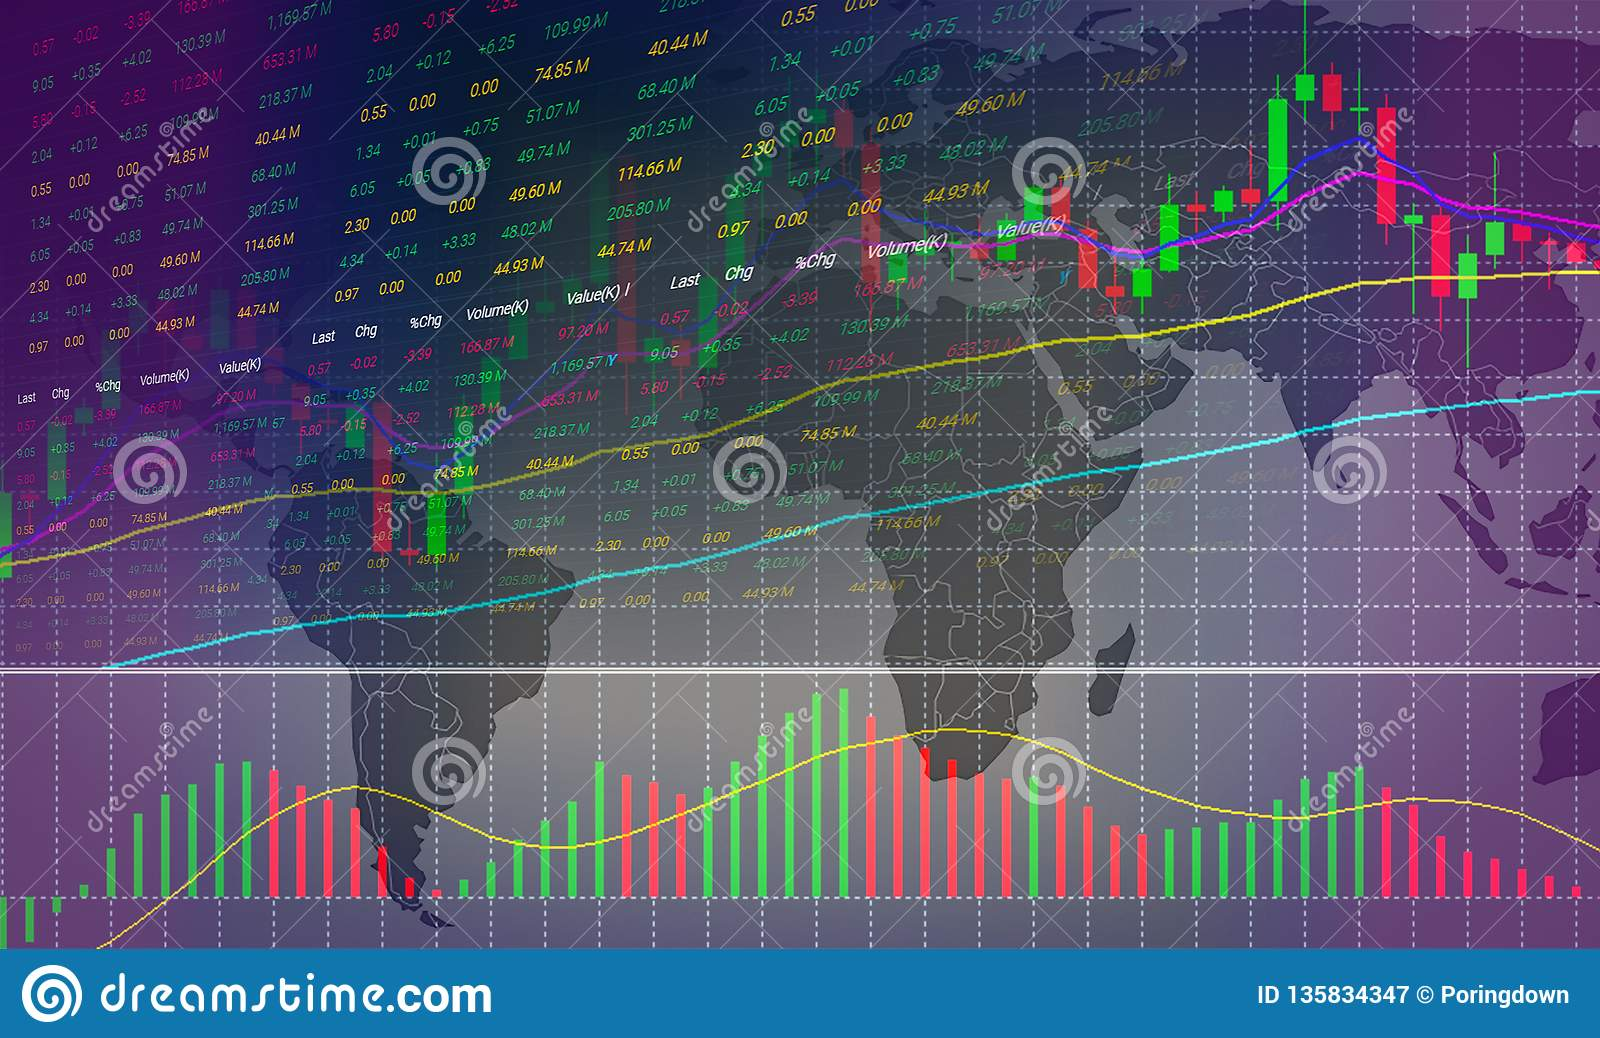 Stock market or forex trading graph and candlestick chart on world map - investing and stock market